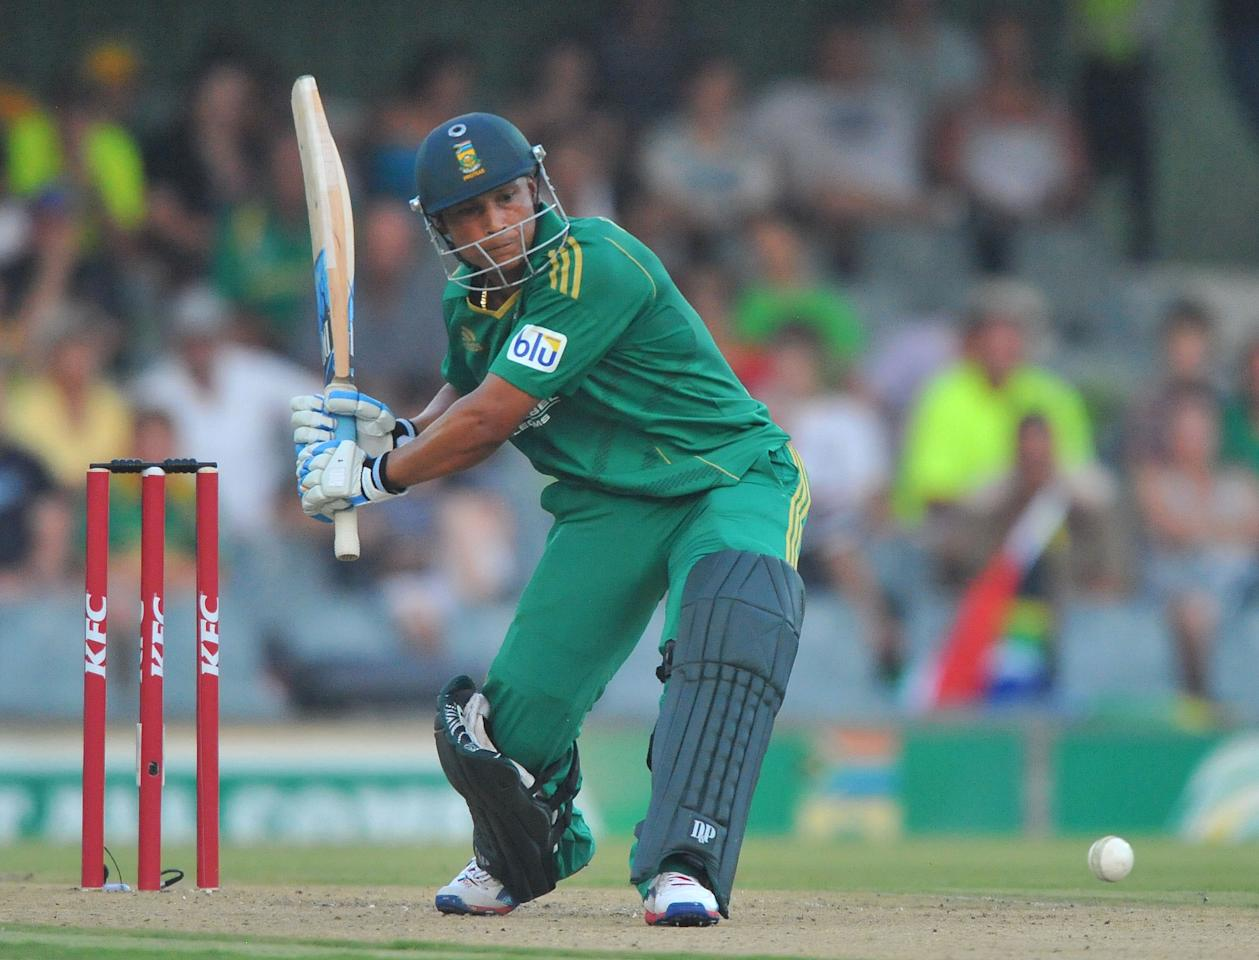 EAST LONDON, SOUTH AFRICA - DECEMBER 23:   Henry Davids of South Africa about to hit the ball for a six during the 2nd T20 match between South Africa and New Zealand at Buffalo Park on December 23, 2012 in East London, South Africa.  (Photo by Duif du Toit/Gallo Images/Getty Images)